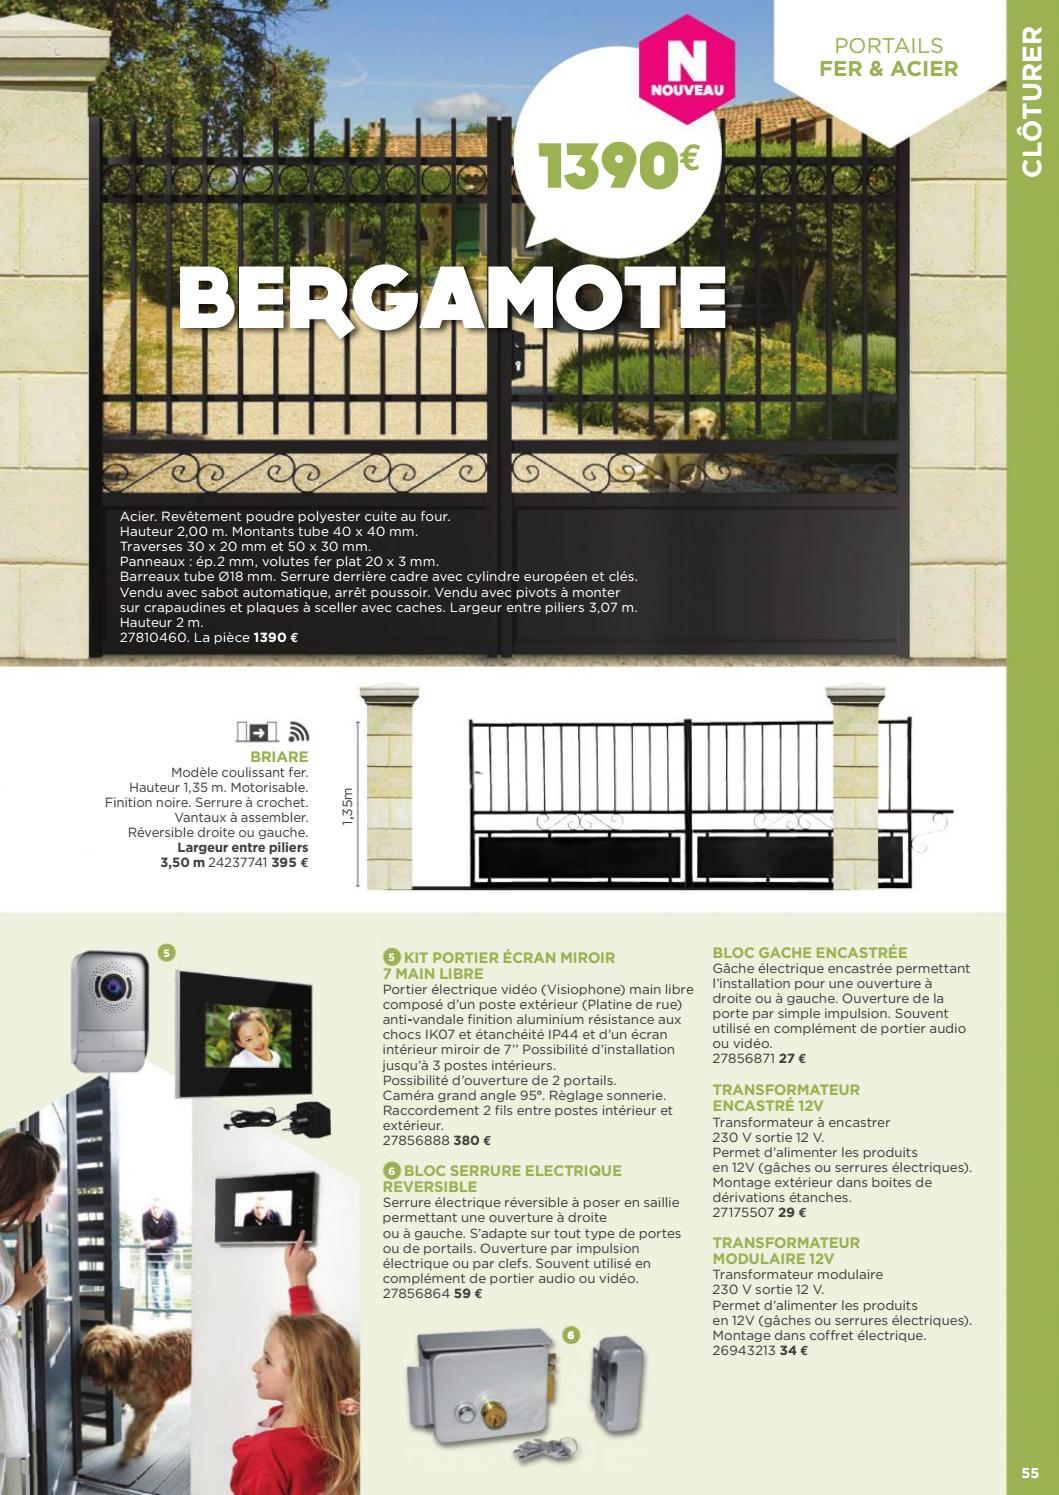 Gache Electrique Exterieur Exterieur Amenagements Murs Terrasses Jardins 2017 Selection By